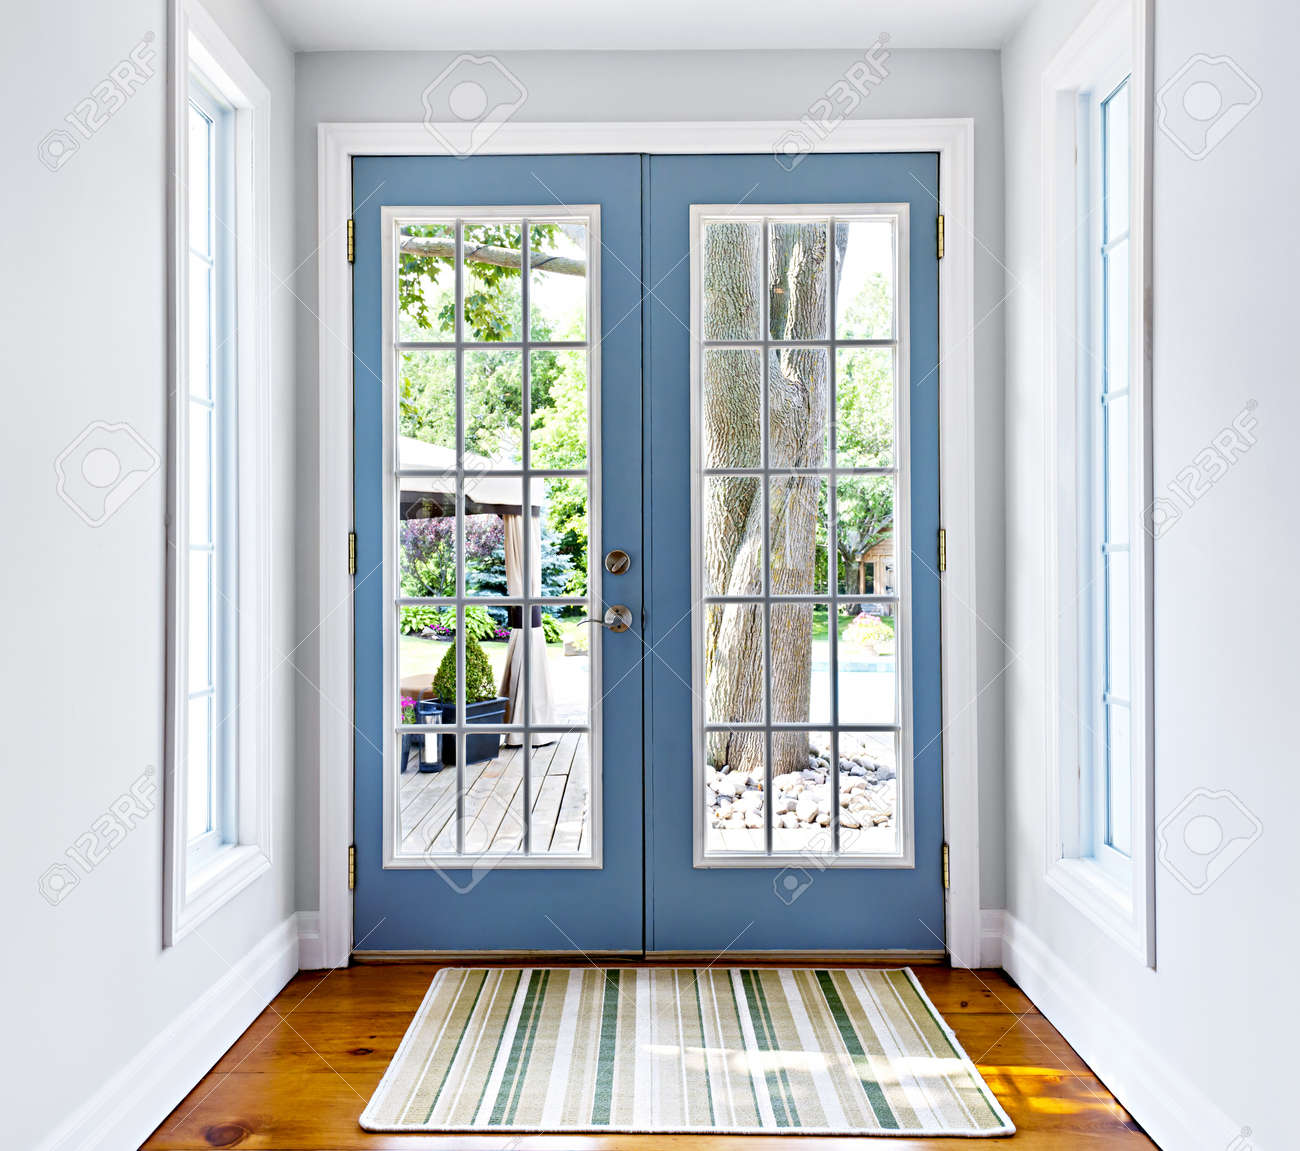 Double Patio French Doors With Windows Exiting To Sunny Backyard Stock Photo